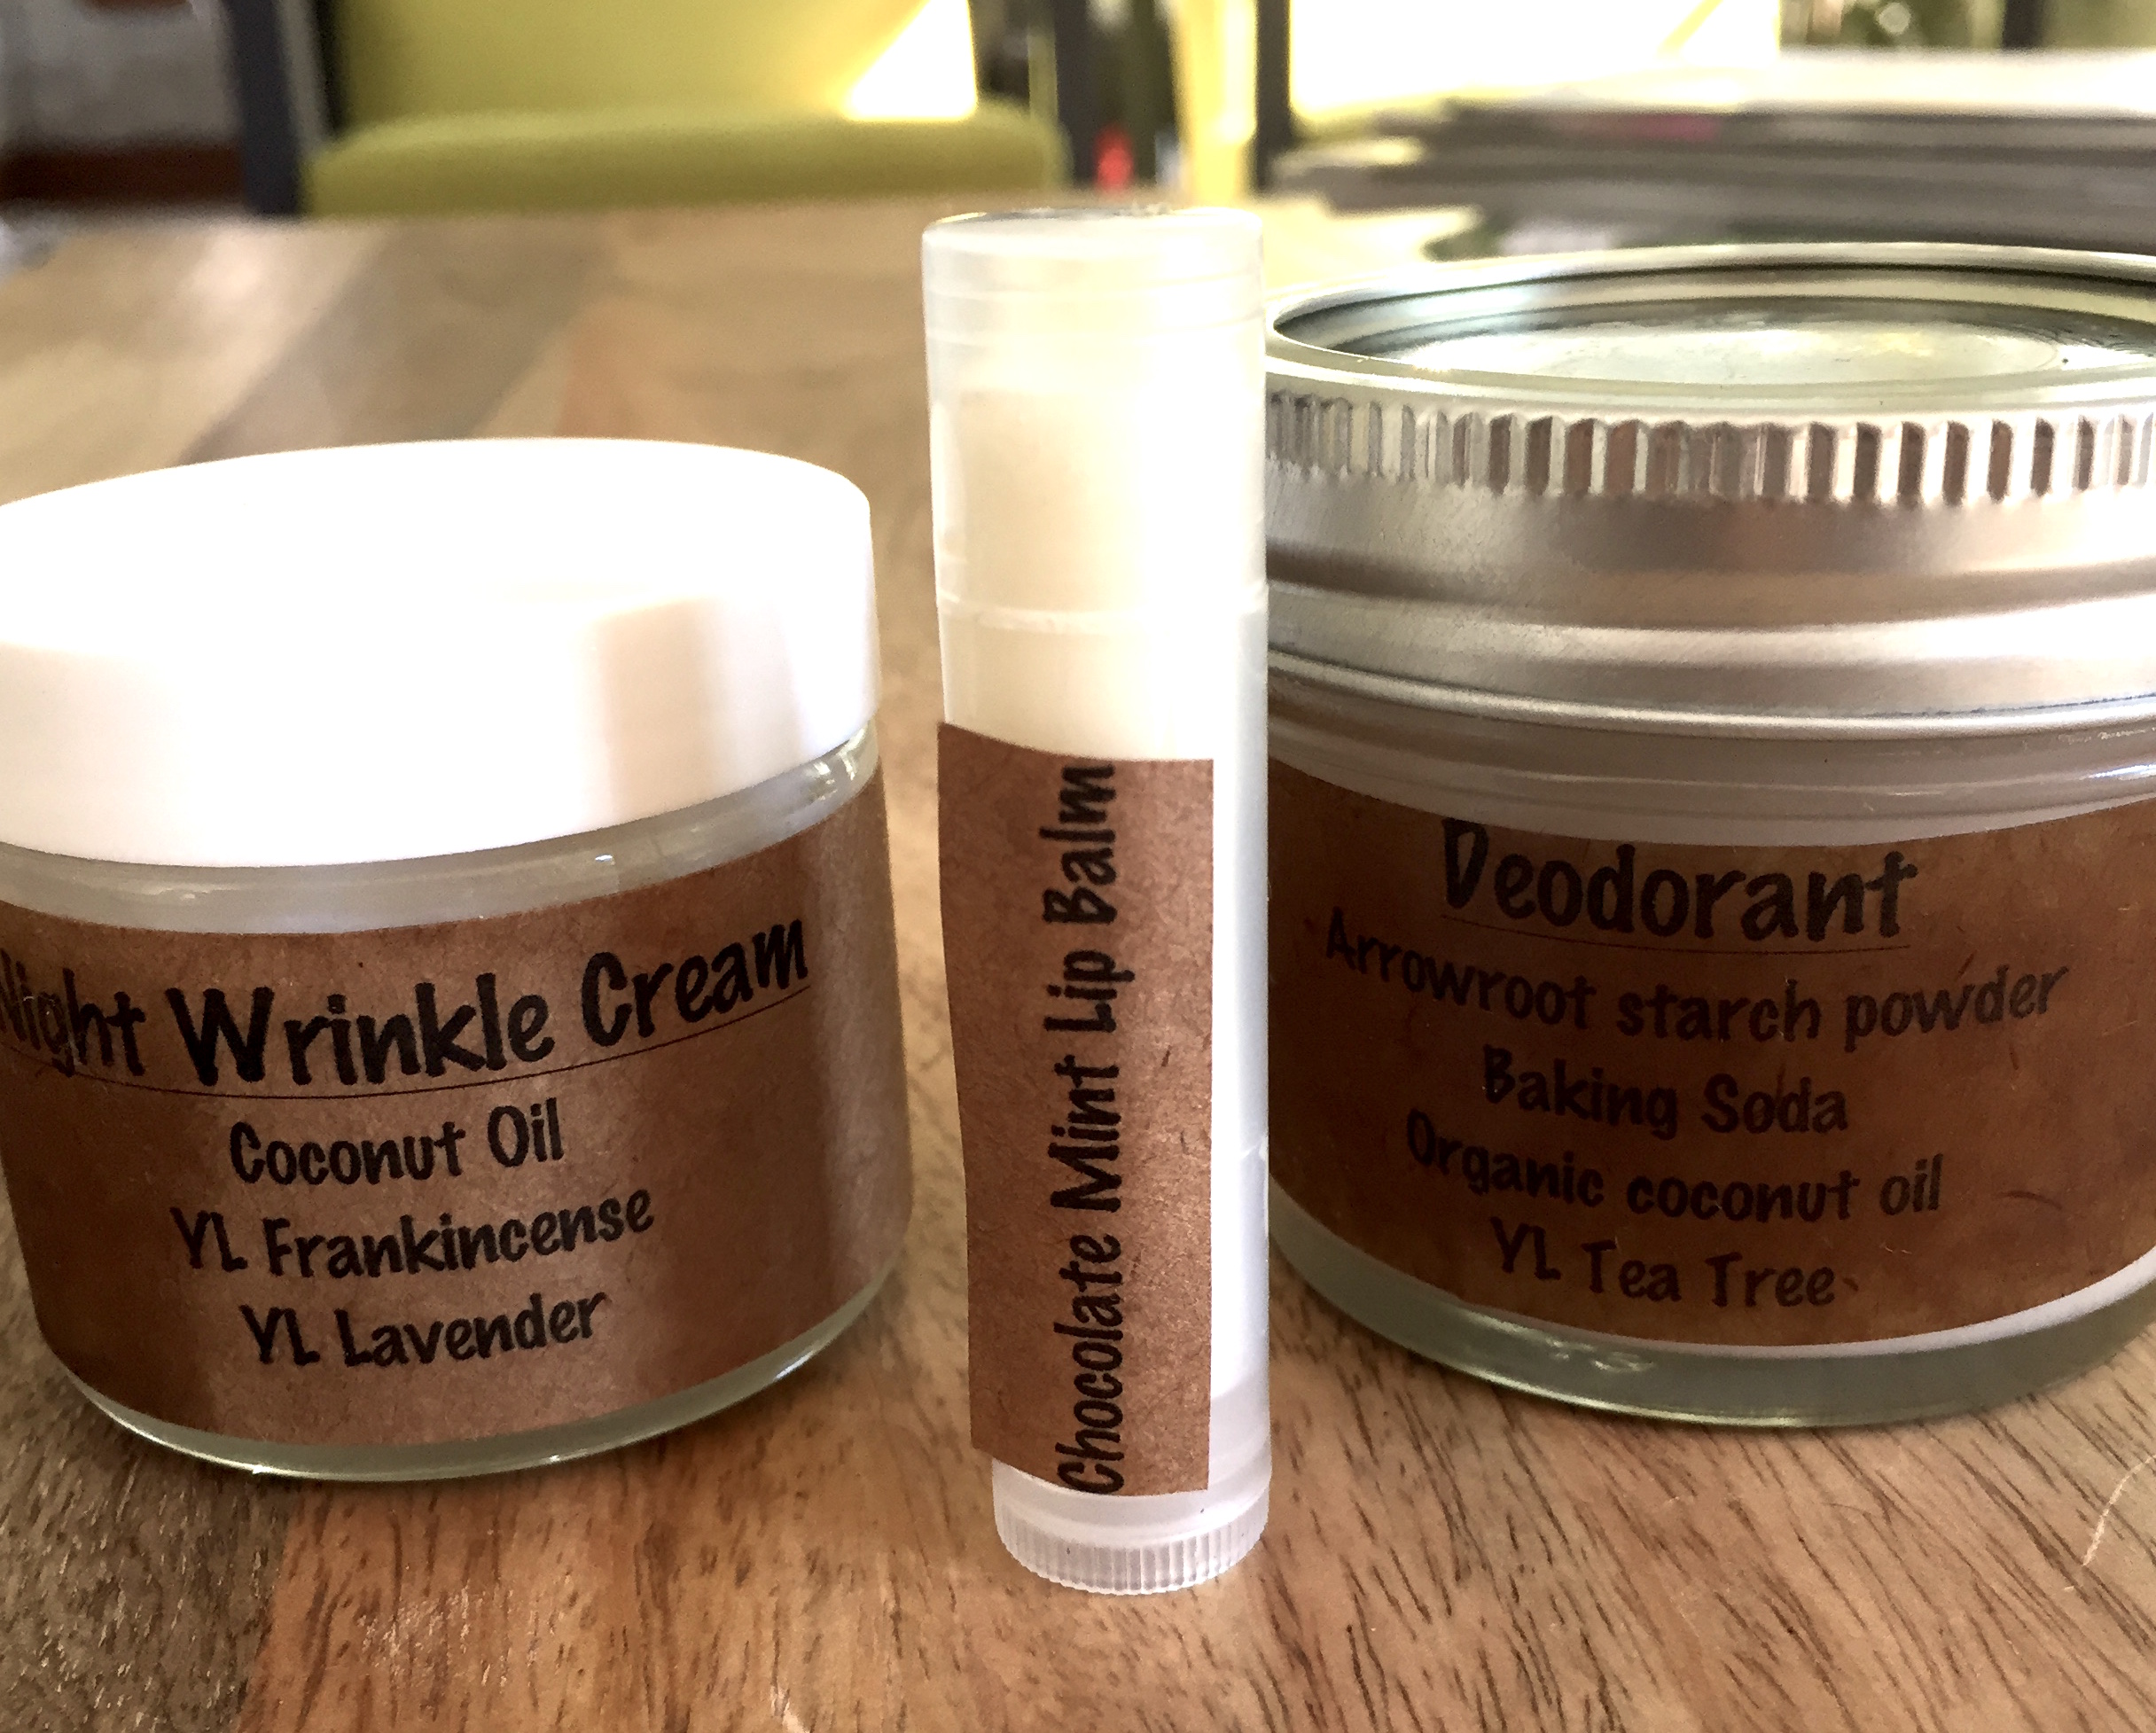 the lovely products Amy sent me!